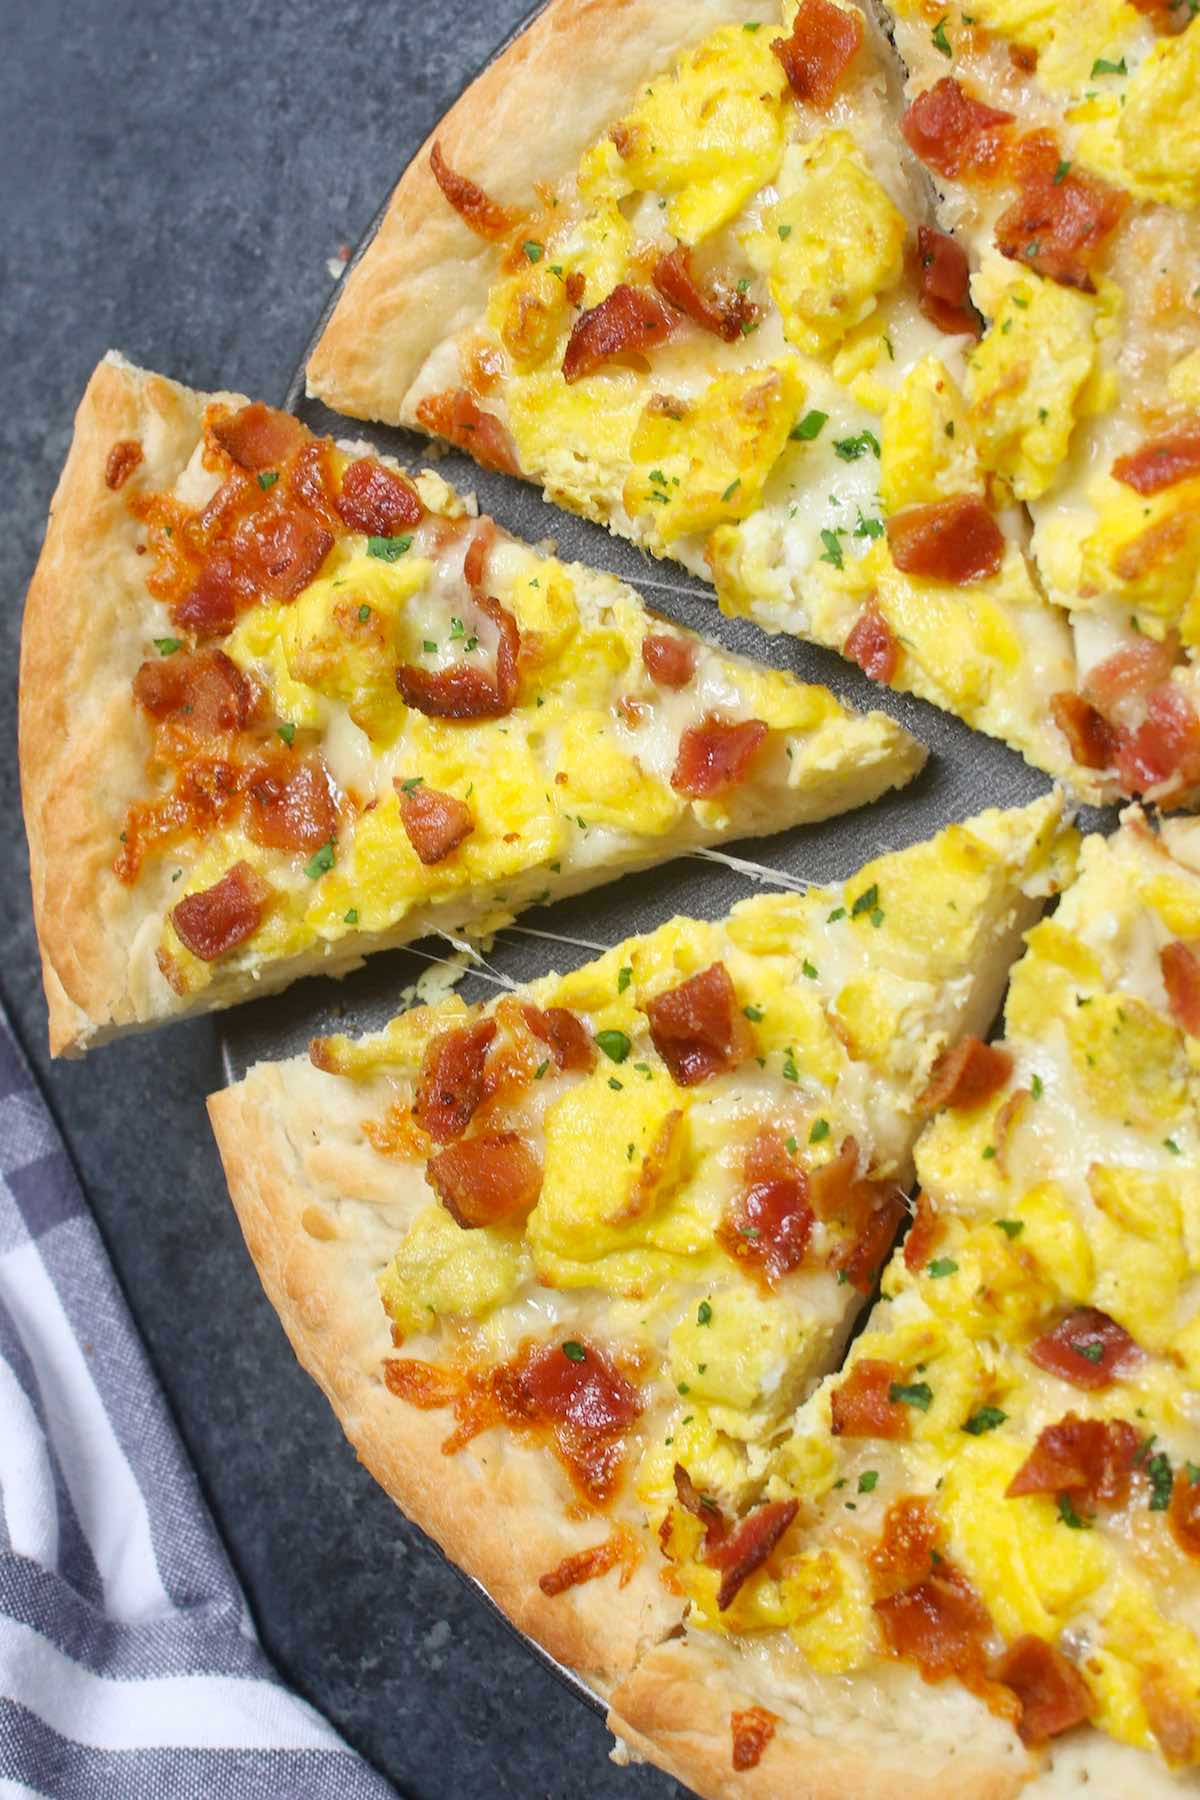 Easy Breakfast Pizza recipe begins with homemade pizza dough, topped with crisp bacon bits, scrambled eggs and mozzarella cheese.